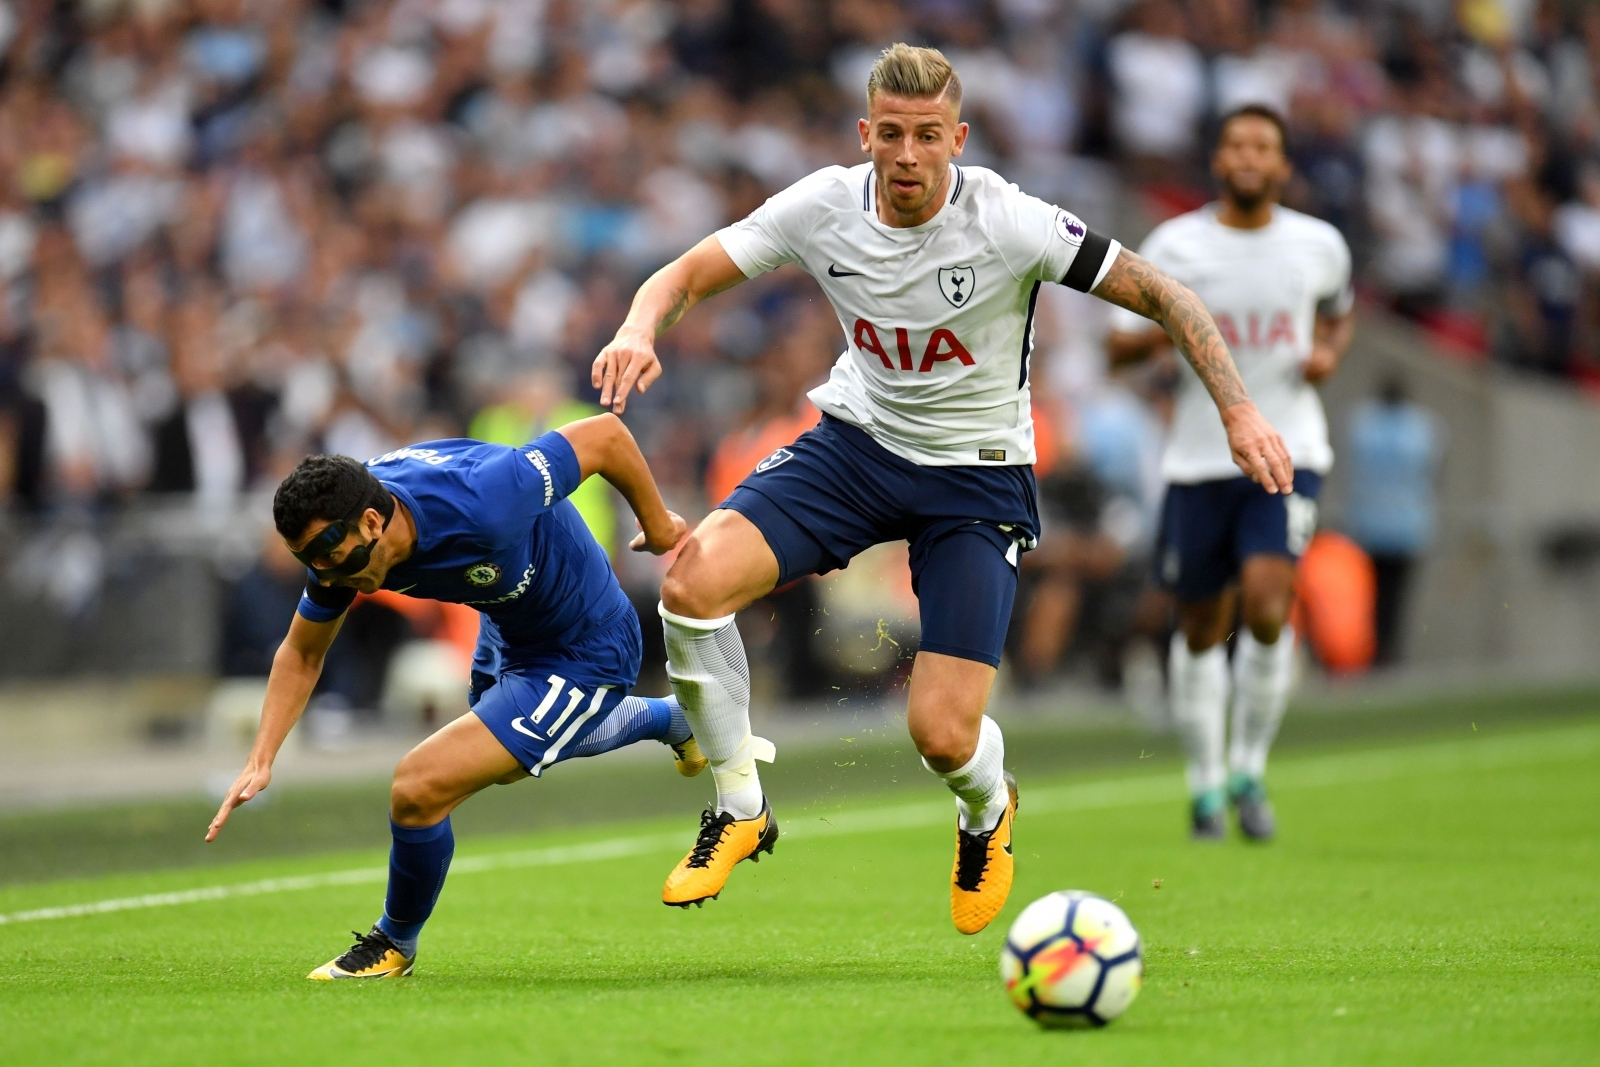 Barcelona keep tabs on Alderweireld's situation at Tottenham